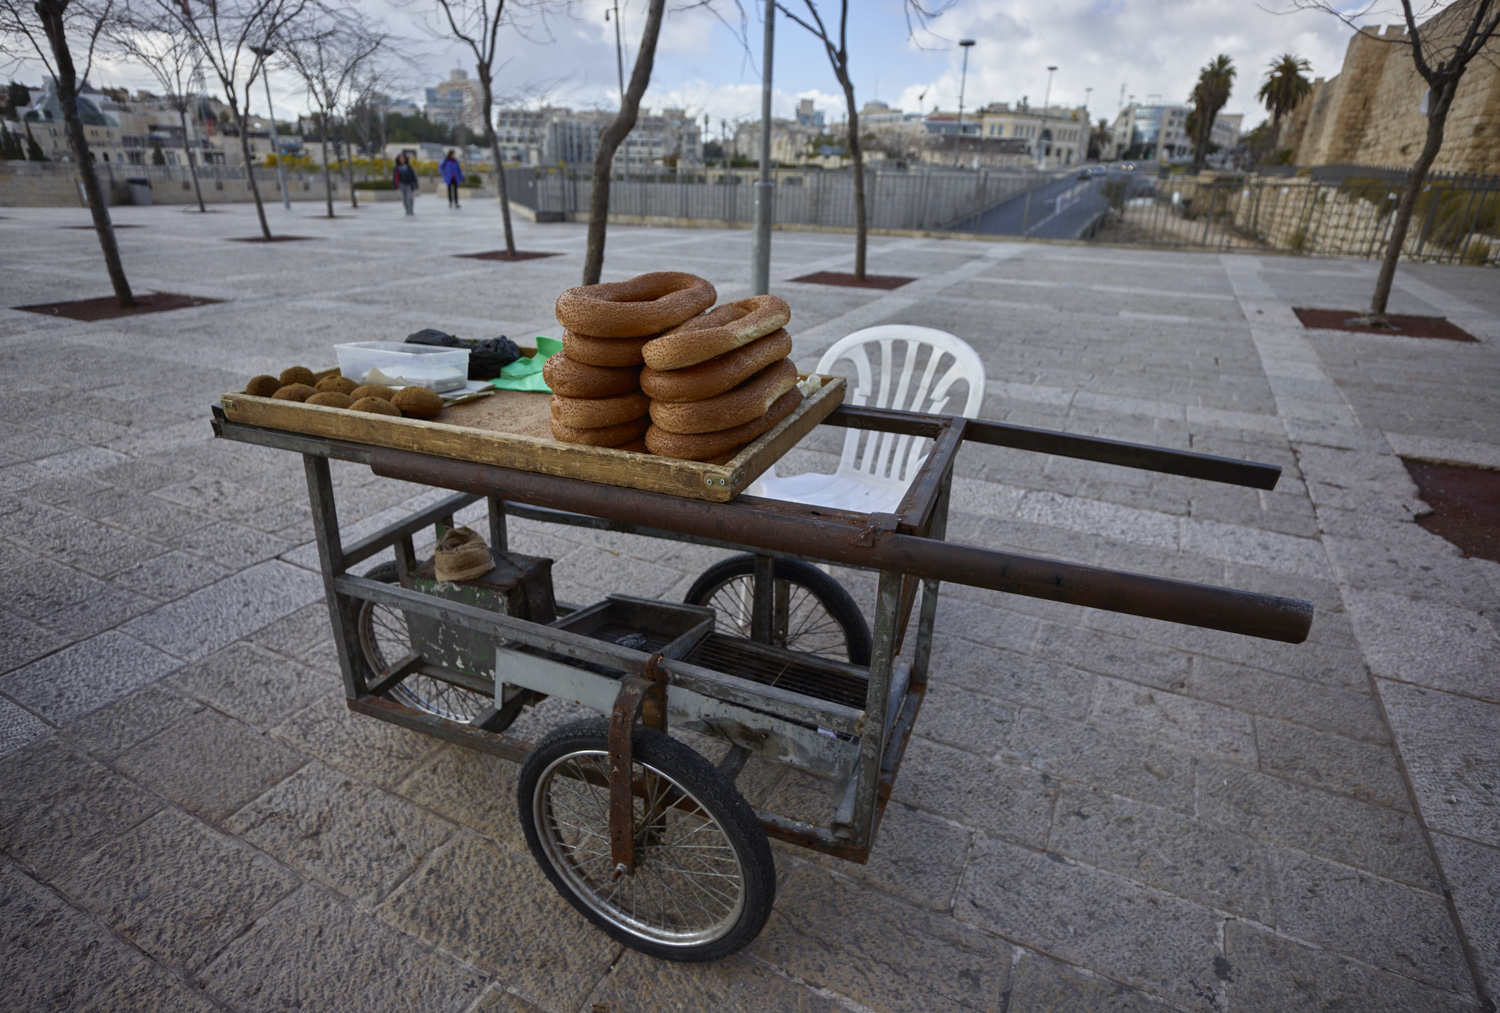 Bagels - Jerusalem, January 2016